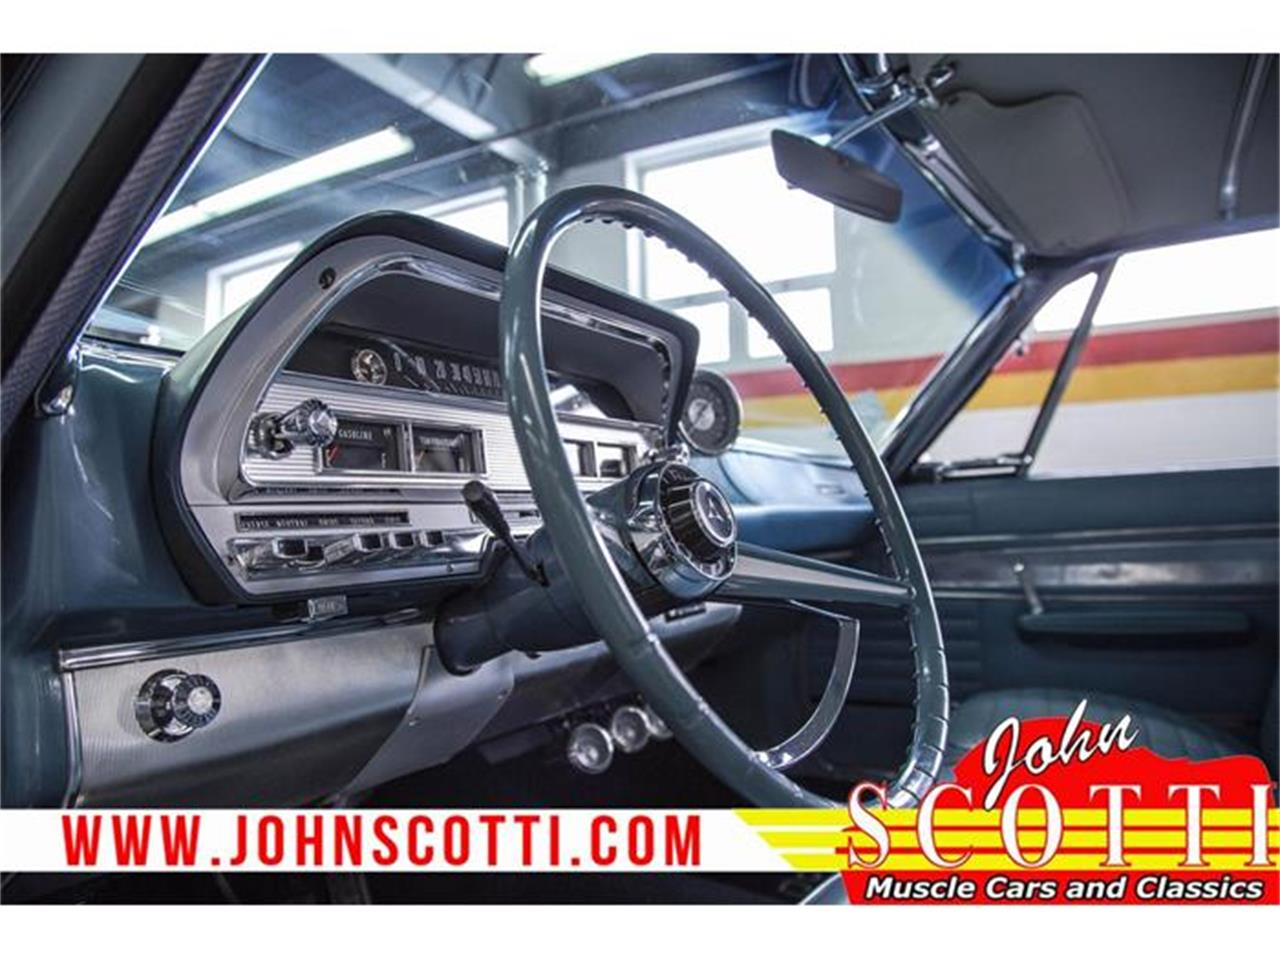 Large Picture of 1963 Polara - $54,500.00 Offered by John Scotti Classic Cars - GA0M